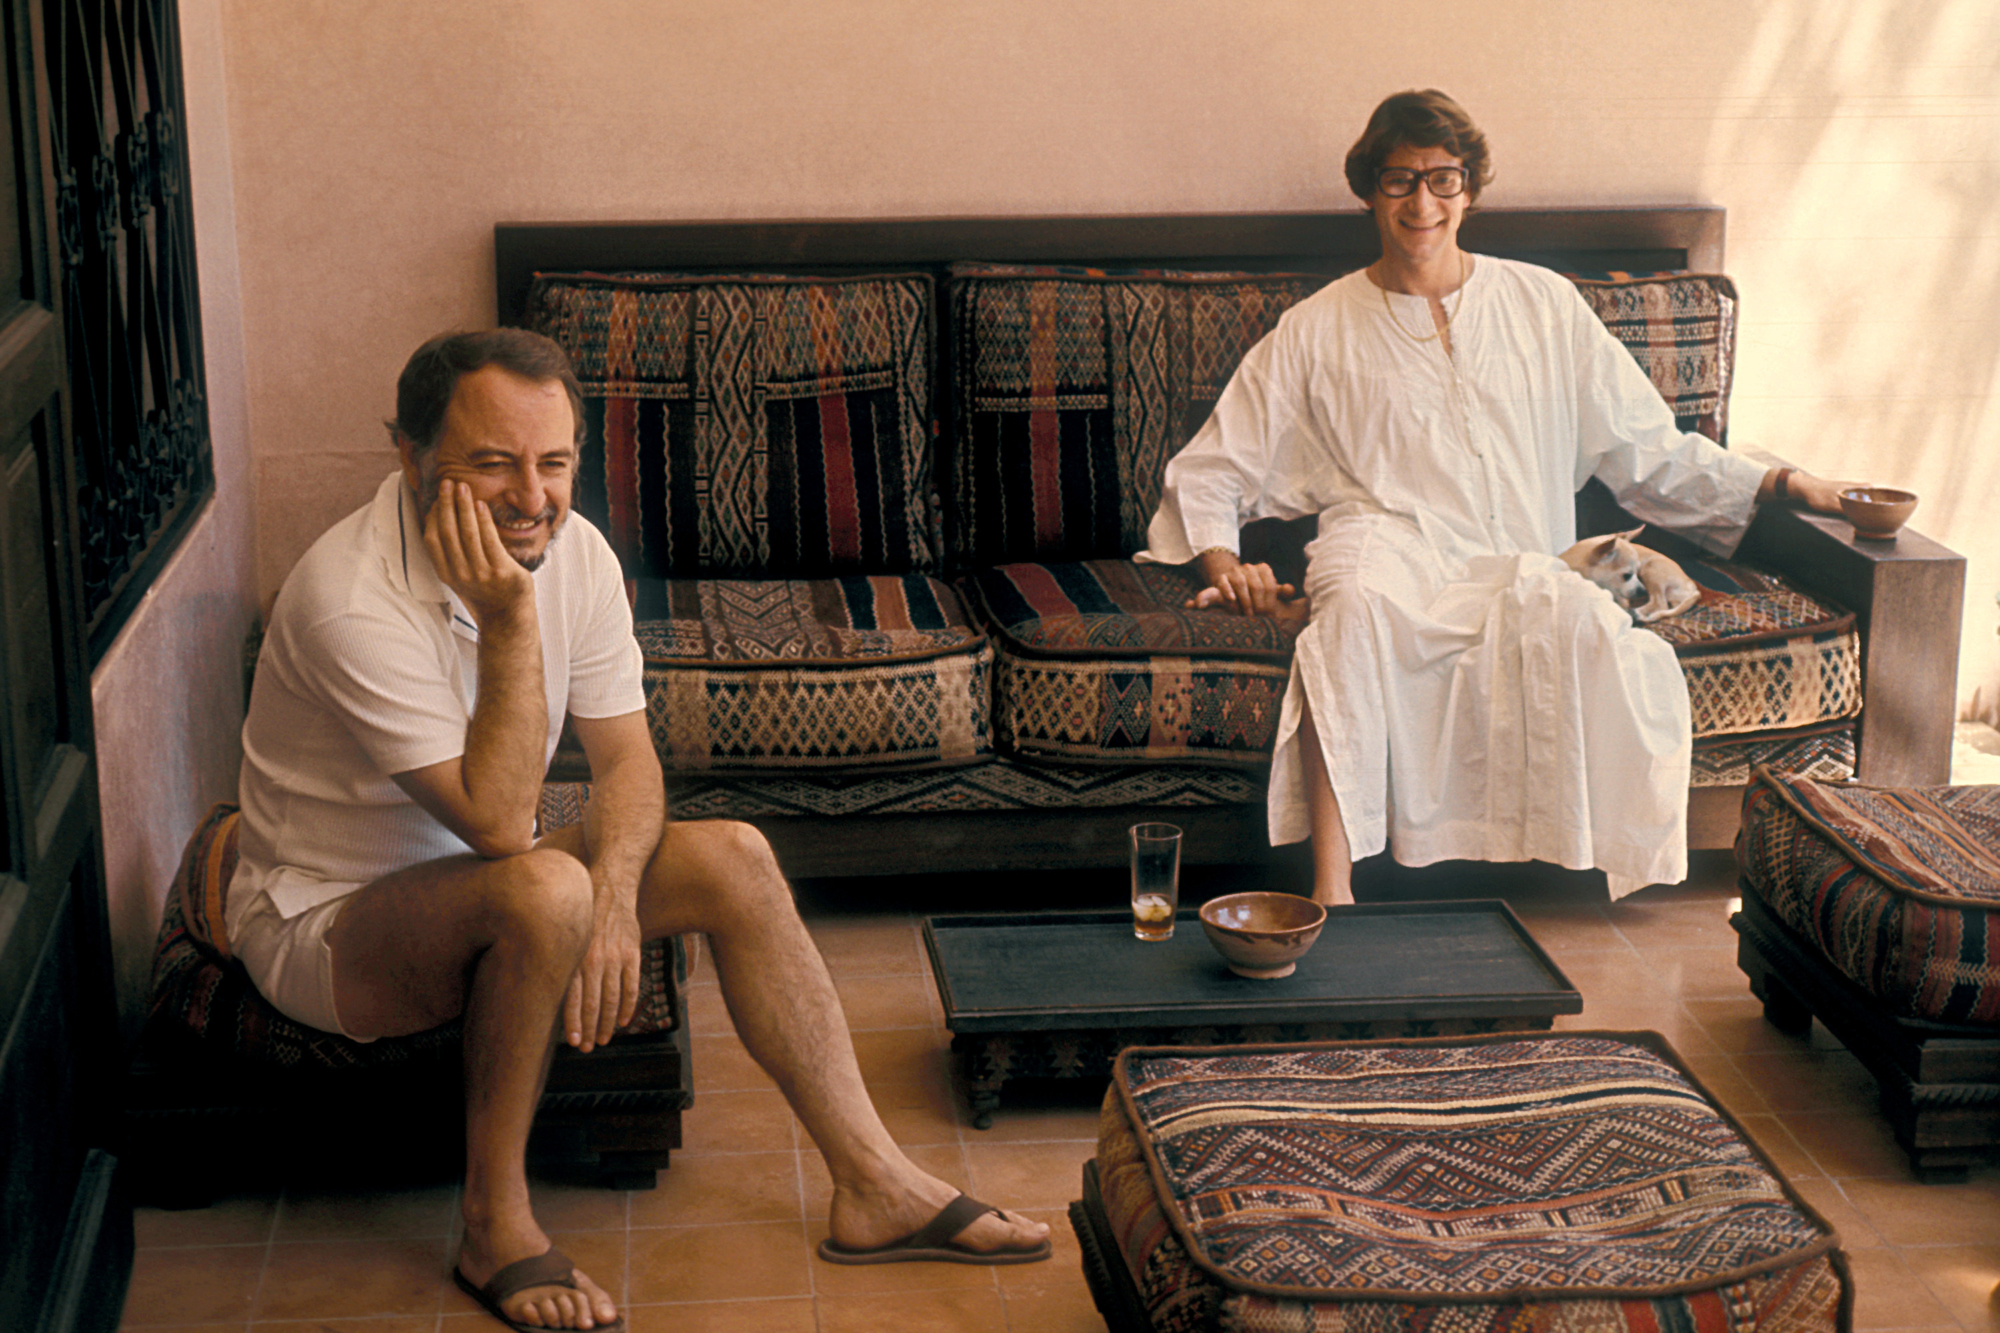 dcf8f00fb99 Pierre Bergé and Yves Saint Laurentin their house Dar Es Saada, Marrakech,  1977. Photograph by Guy Marineau. © Musée Yves Saint Laurent Paris / Guy  Marineau